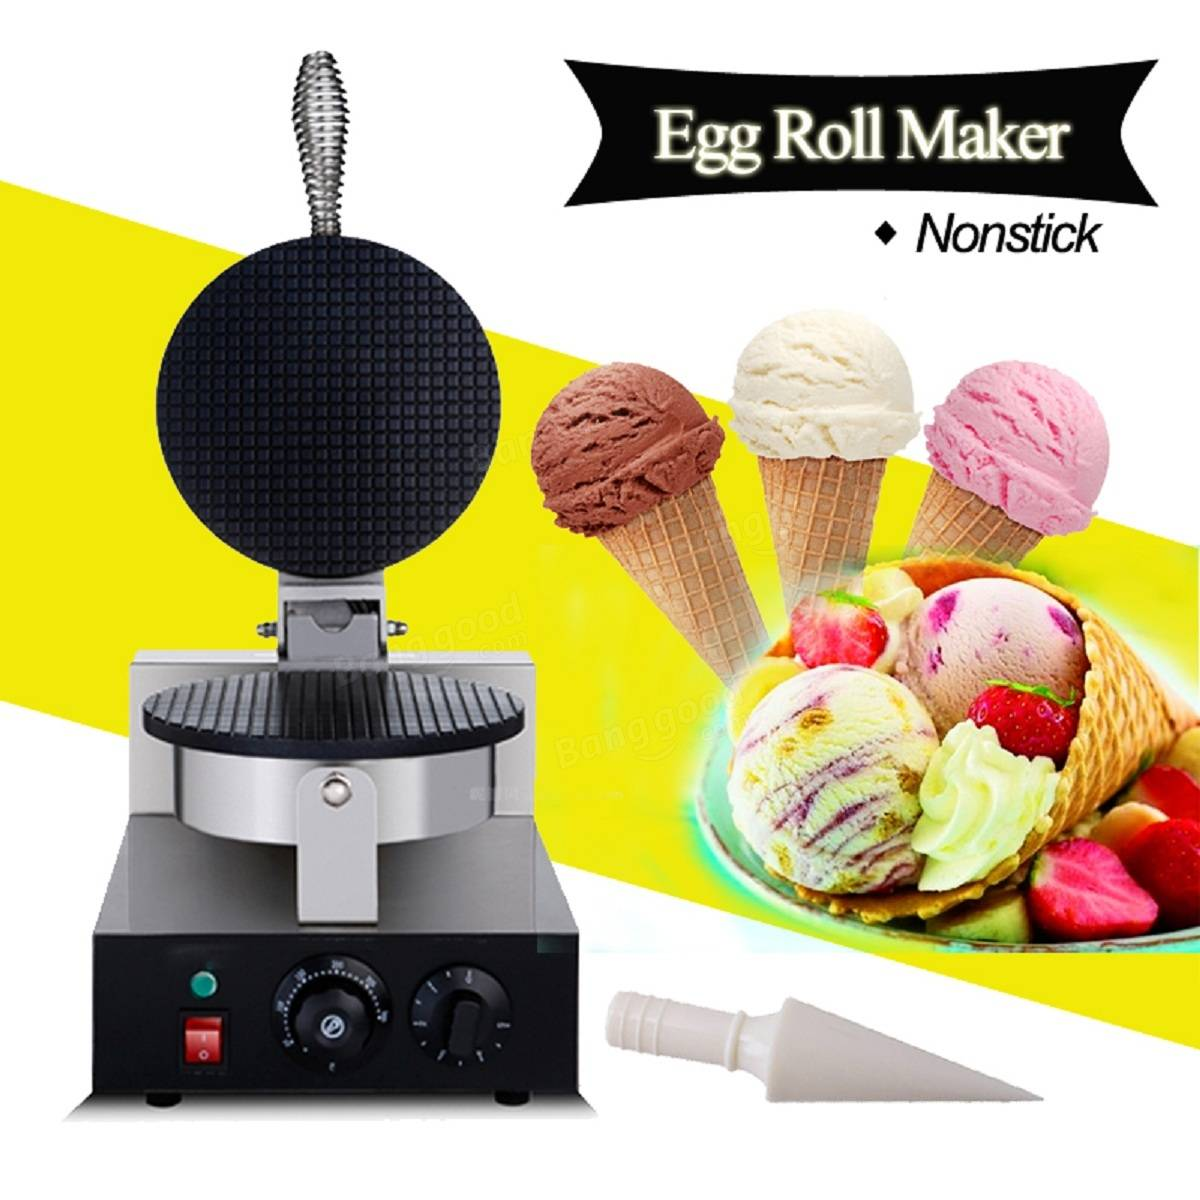 110V/220V Egg Roll Maker Baker Pastry Making Baking Tools Electric Ice Cream Cone Machine US Plug